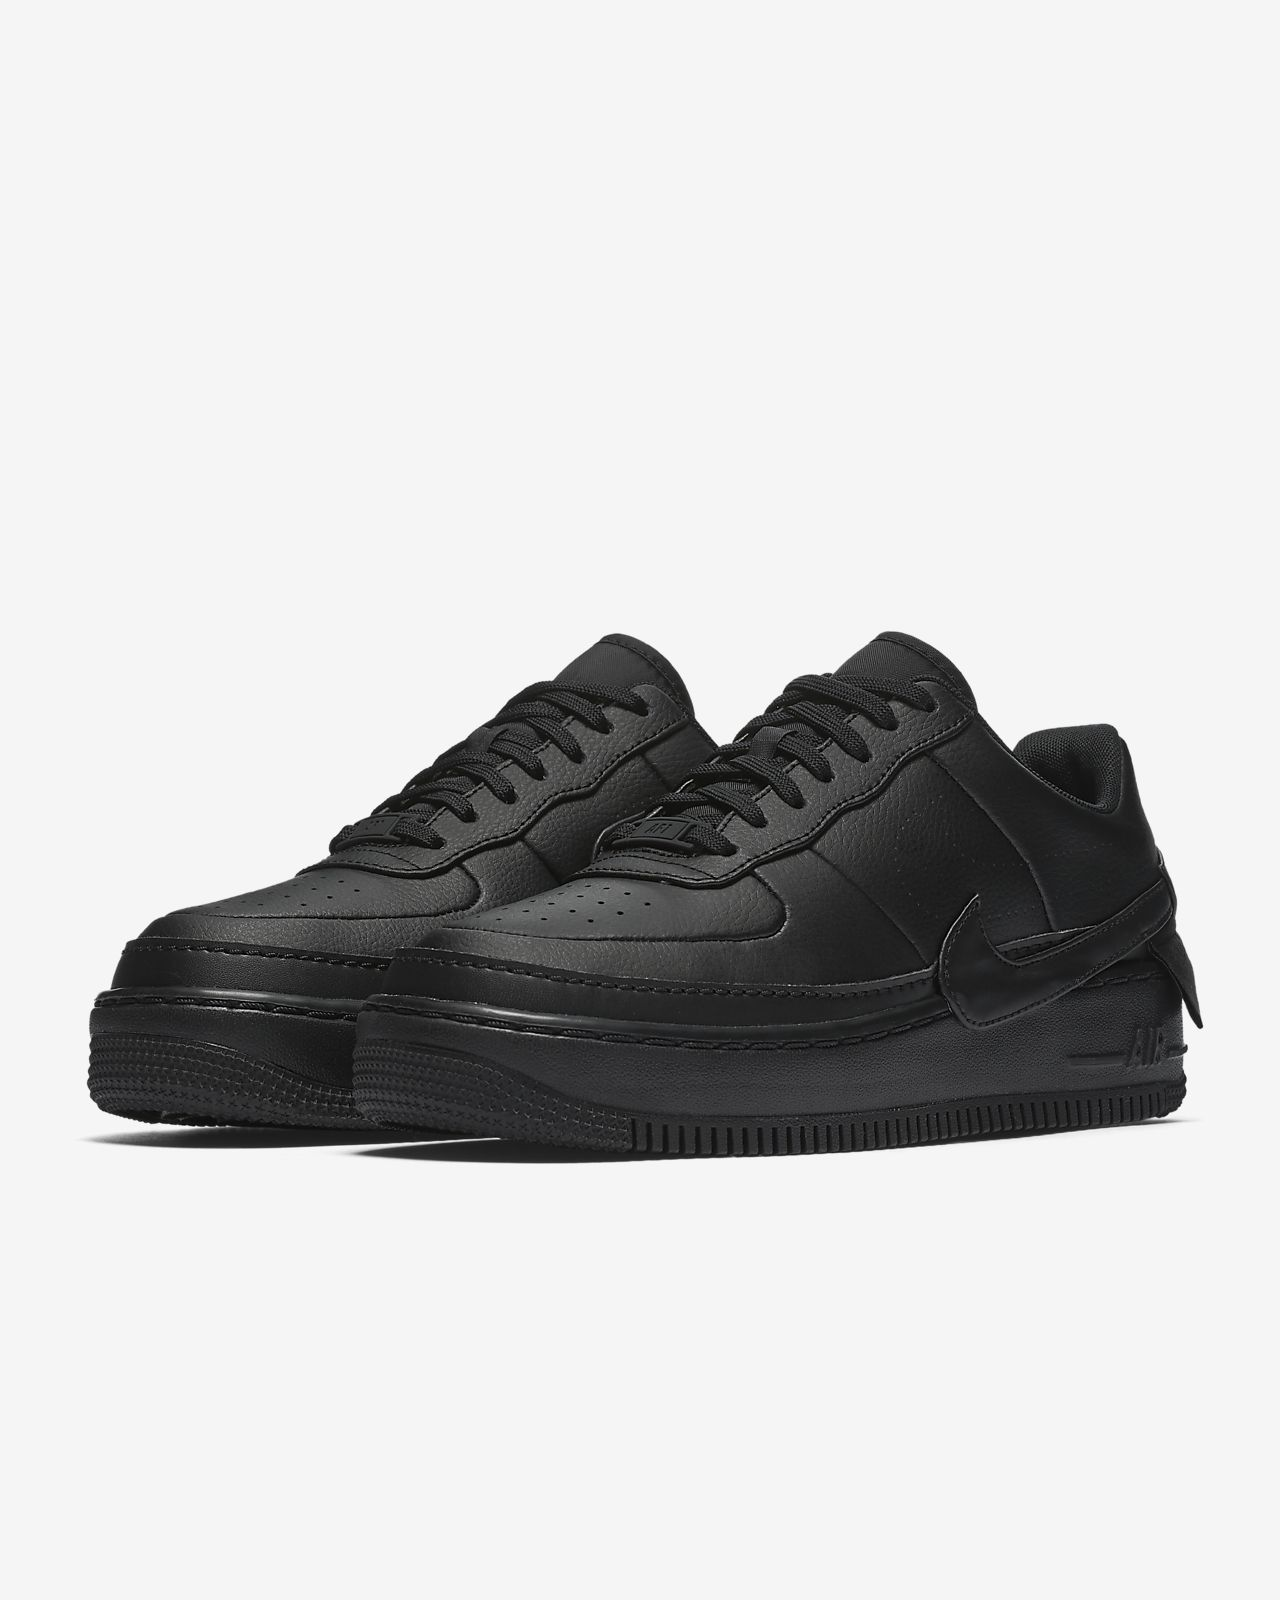 cheap for discount 1c77a 21699 Low Resolution Nike Air Force 1 Jester XX Schuh Nike Air Force 1 Jester XX  Schuh